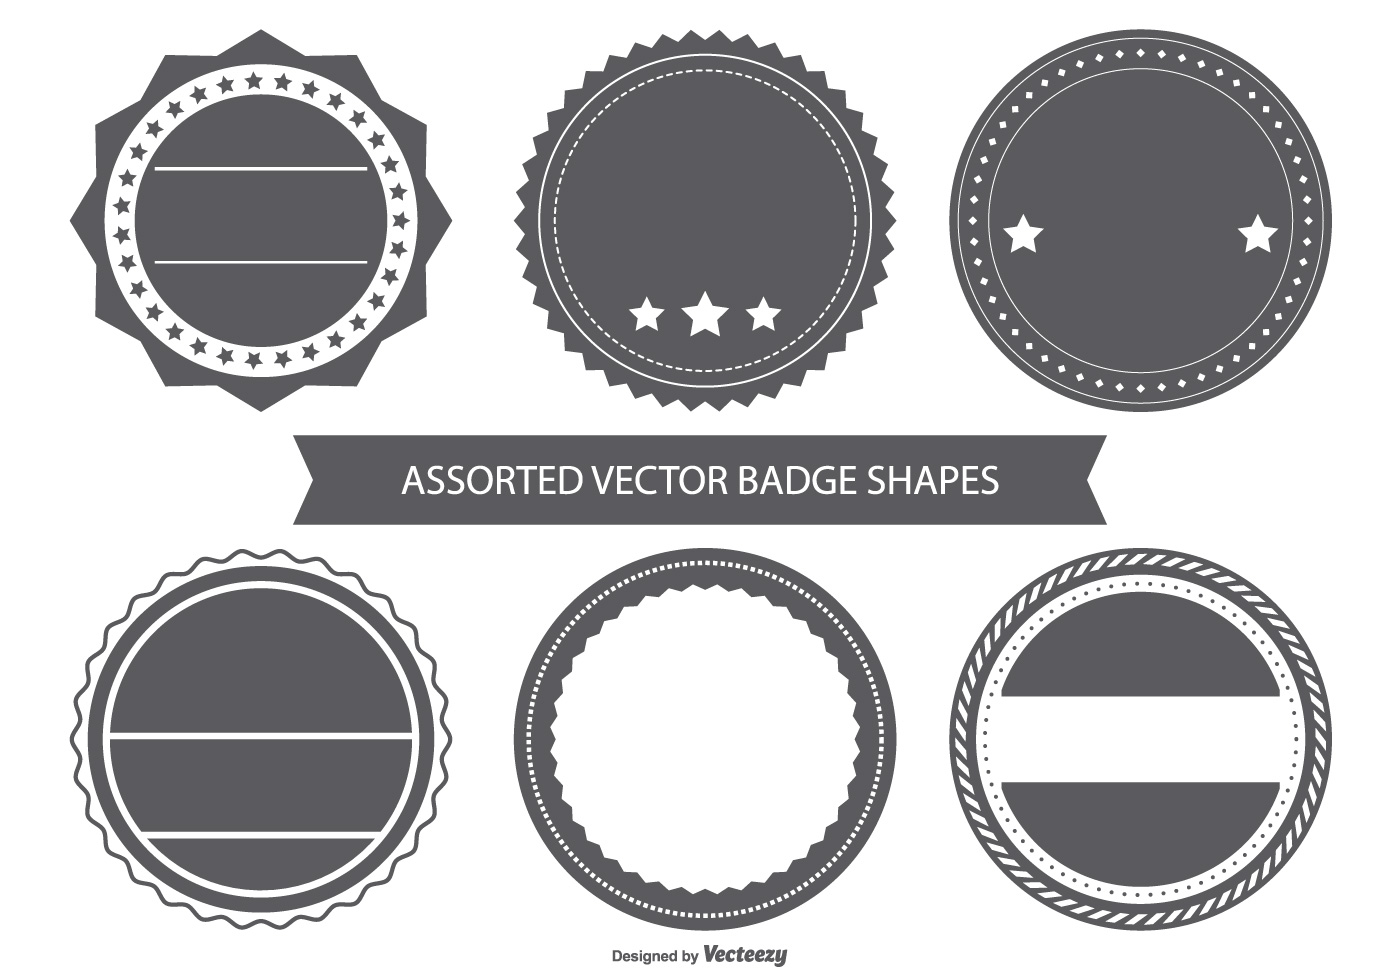 blank vintage badge shapes download free vector art stock graphics images. Black Bedroom Furniture Sets. Home Design Ideas